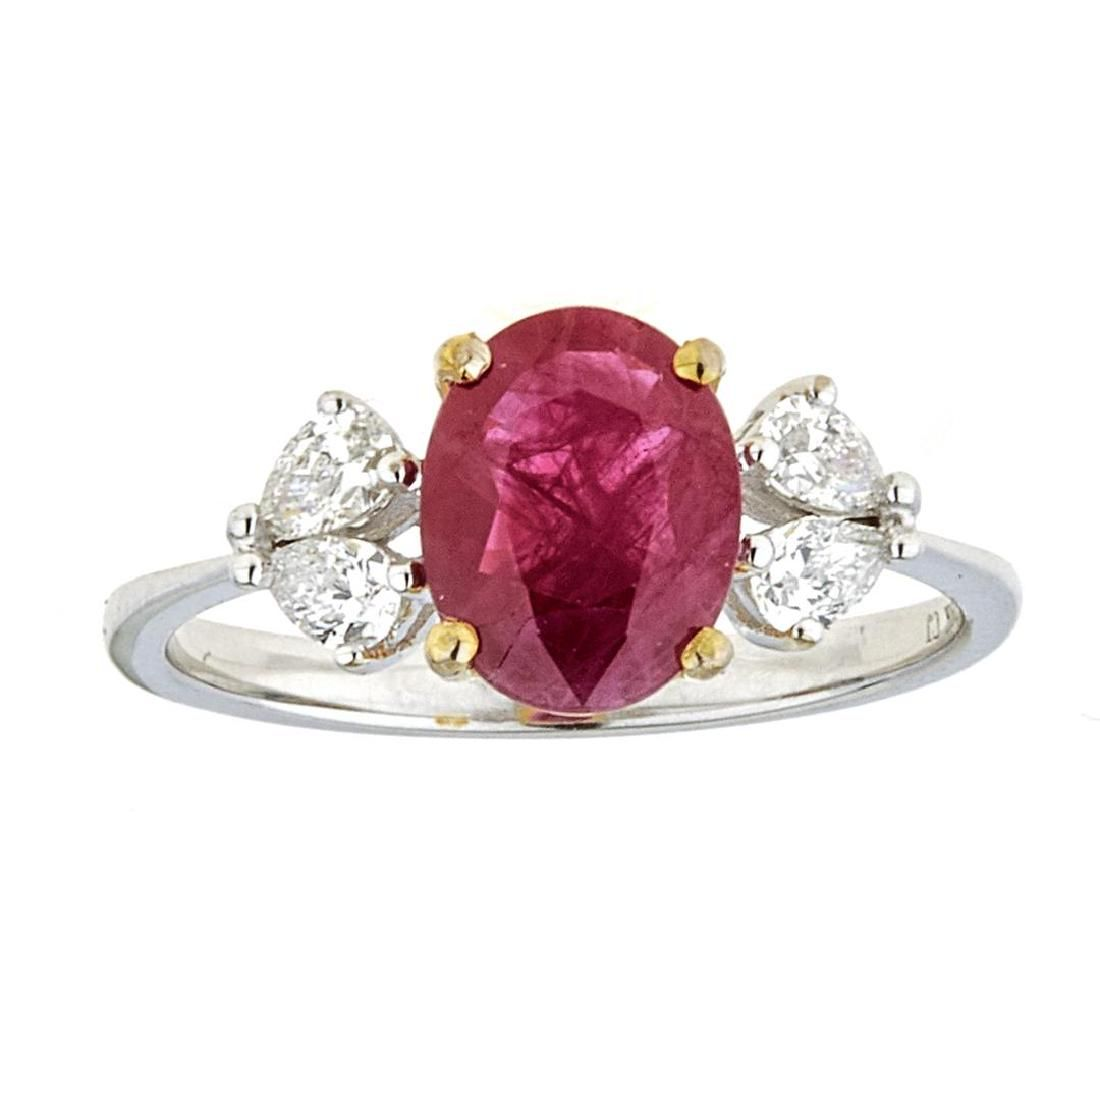 1.76 ctw Ruby and Diamond Ring - 18KT White and Yellow